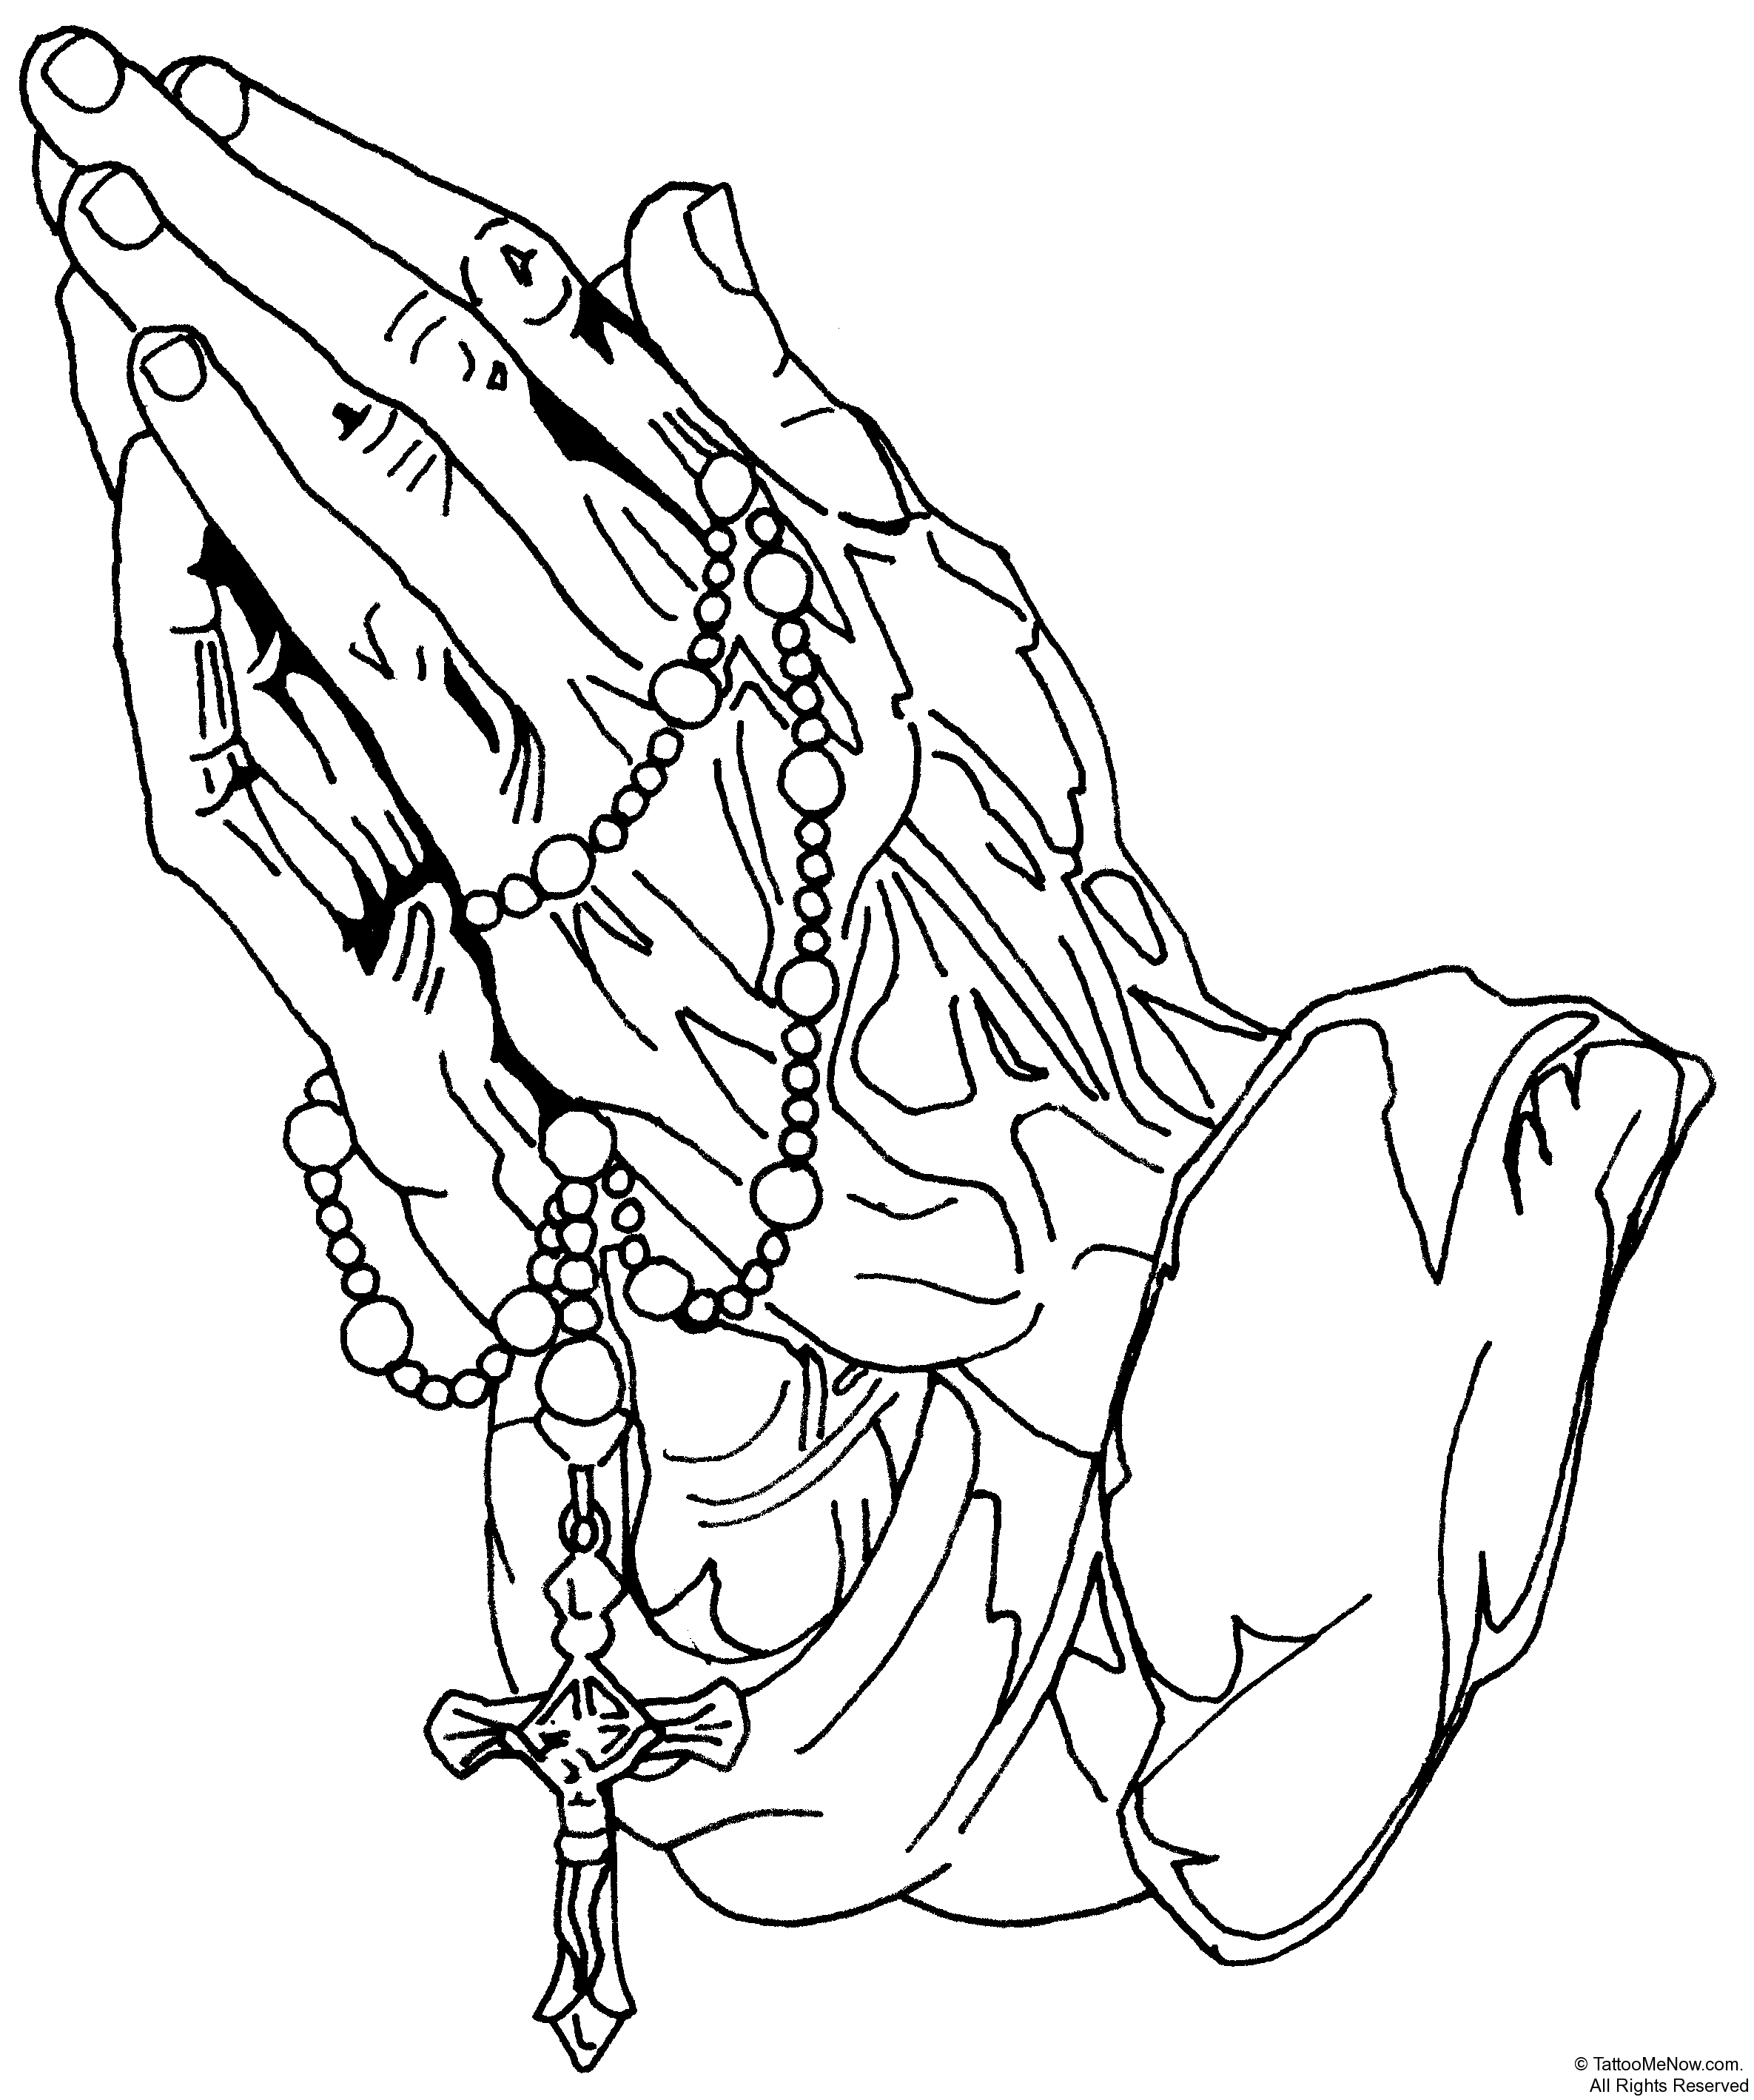 2370x2837 Cool Design Ideas Praying Hands Coloring Page Unique Drawings